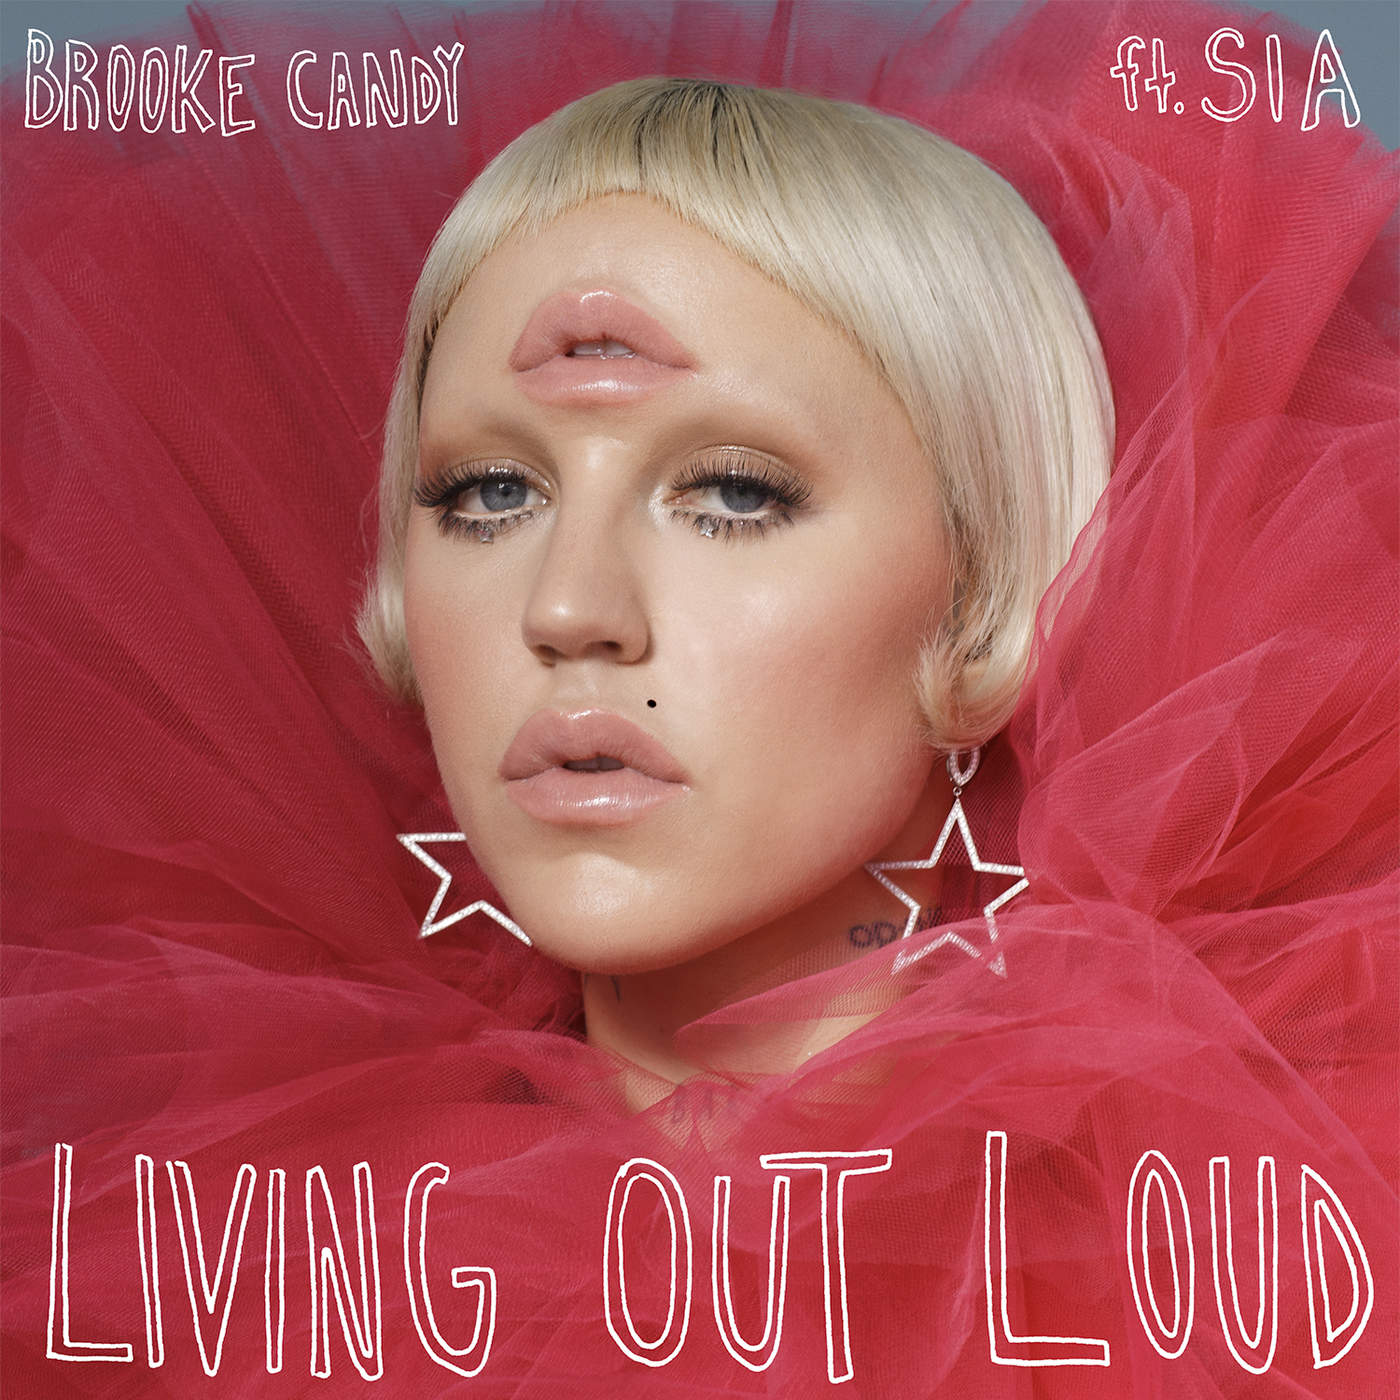 Brooke Candy - Living Out Loud (feat. Sia) - Single Cover